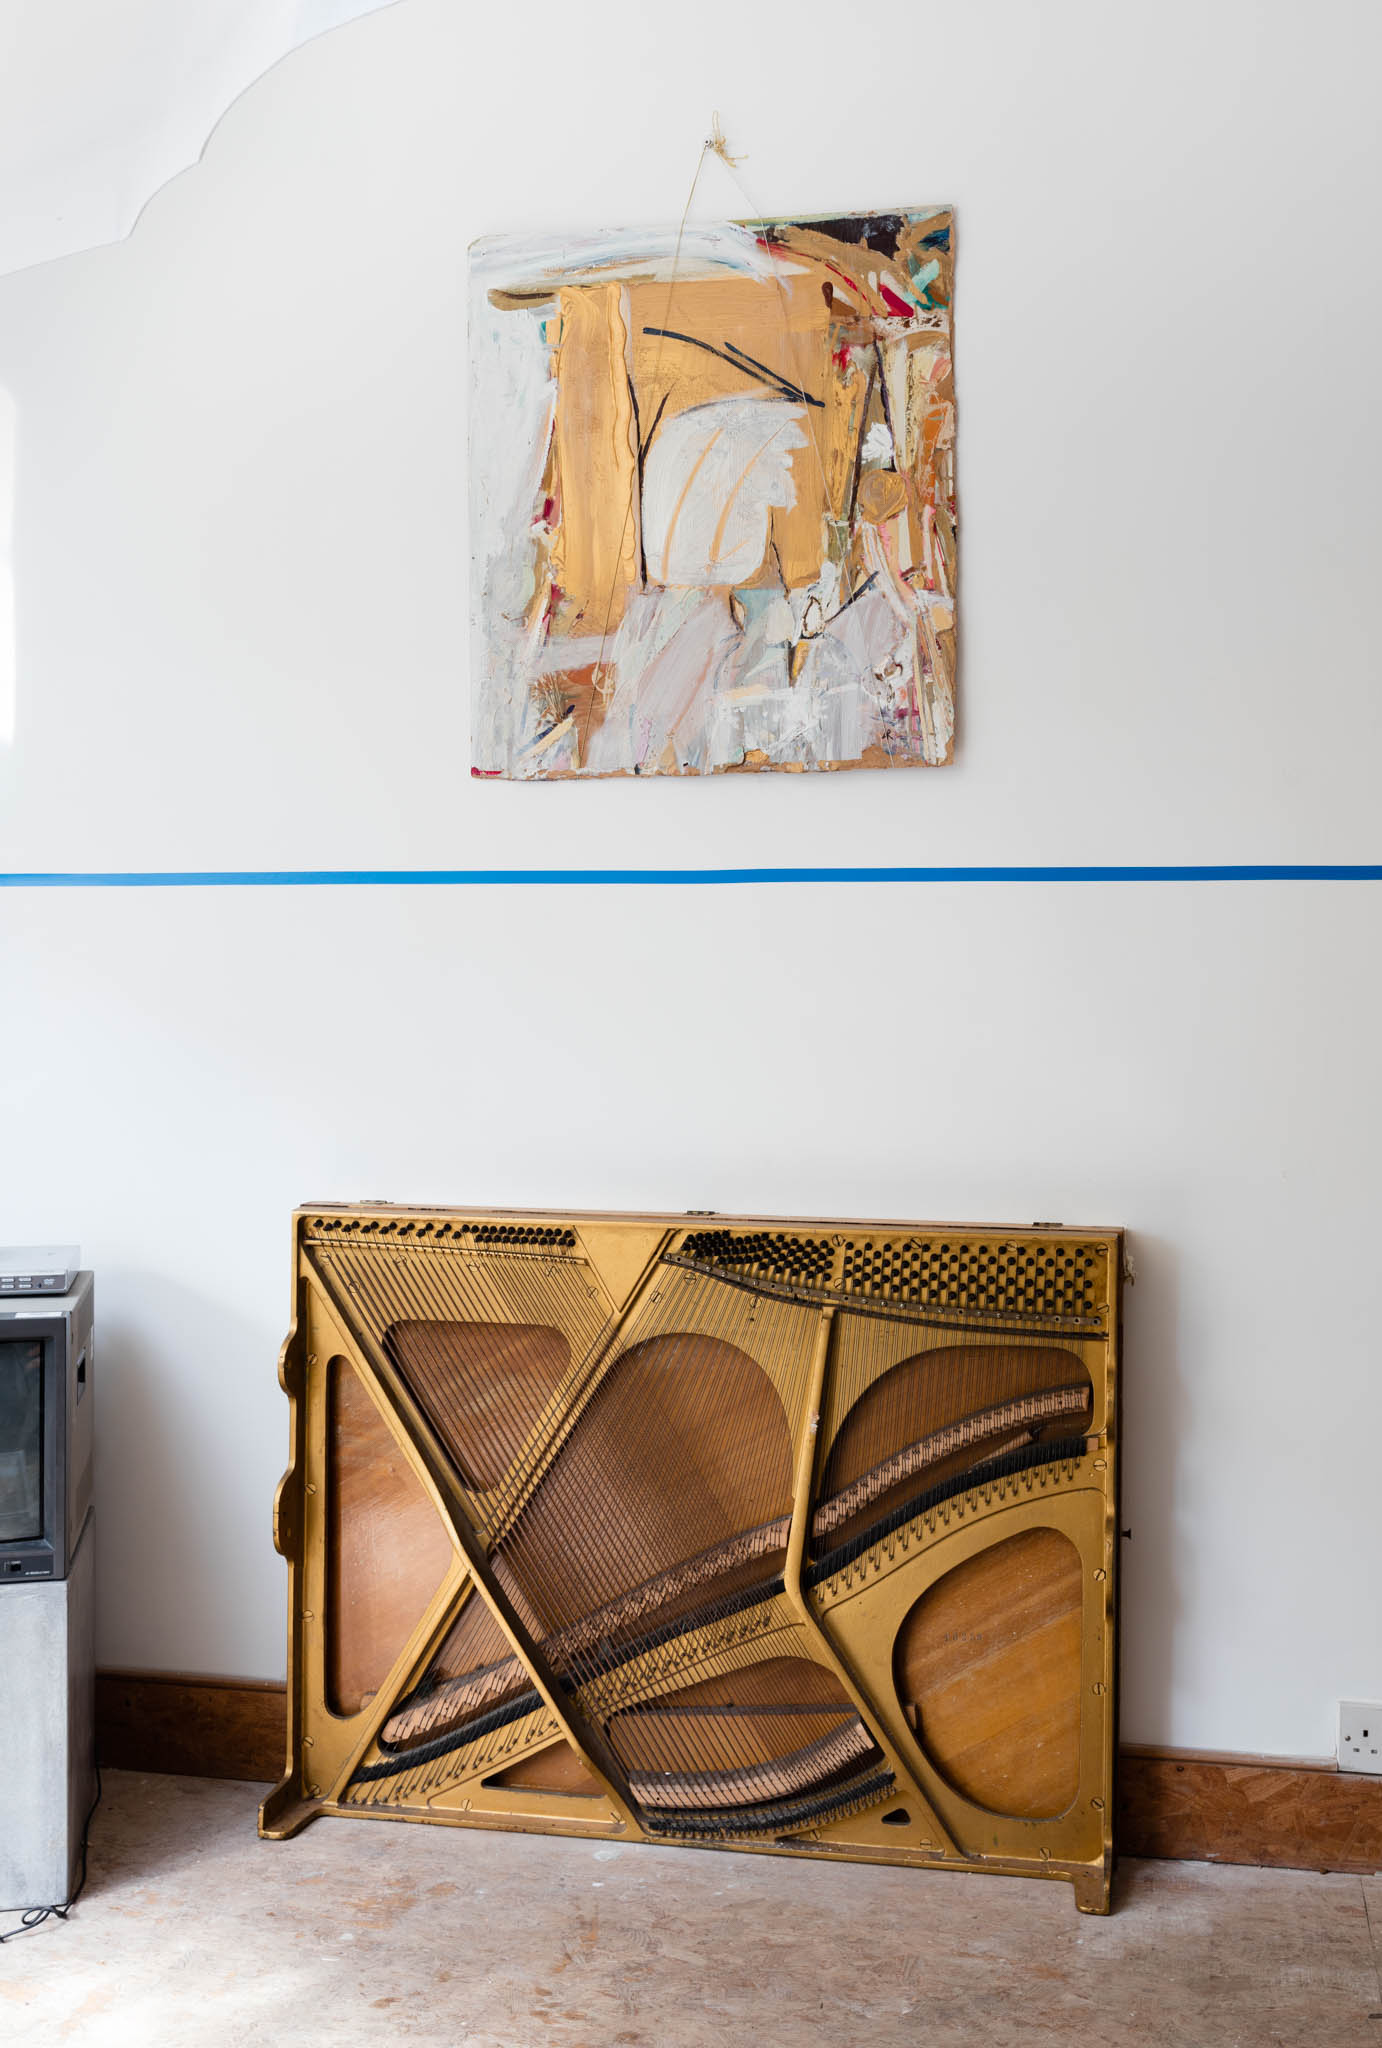 Carlyle Reedy, 'The Harp', Undated; Edward Krasinski, blue electrical tape, 1968/2016 (The Shift 13)